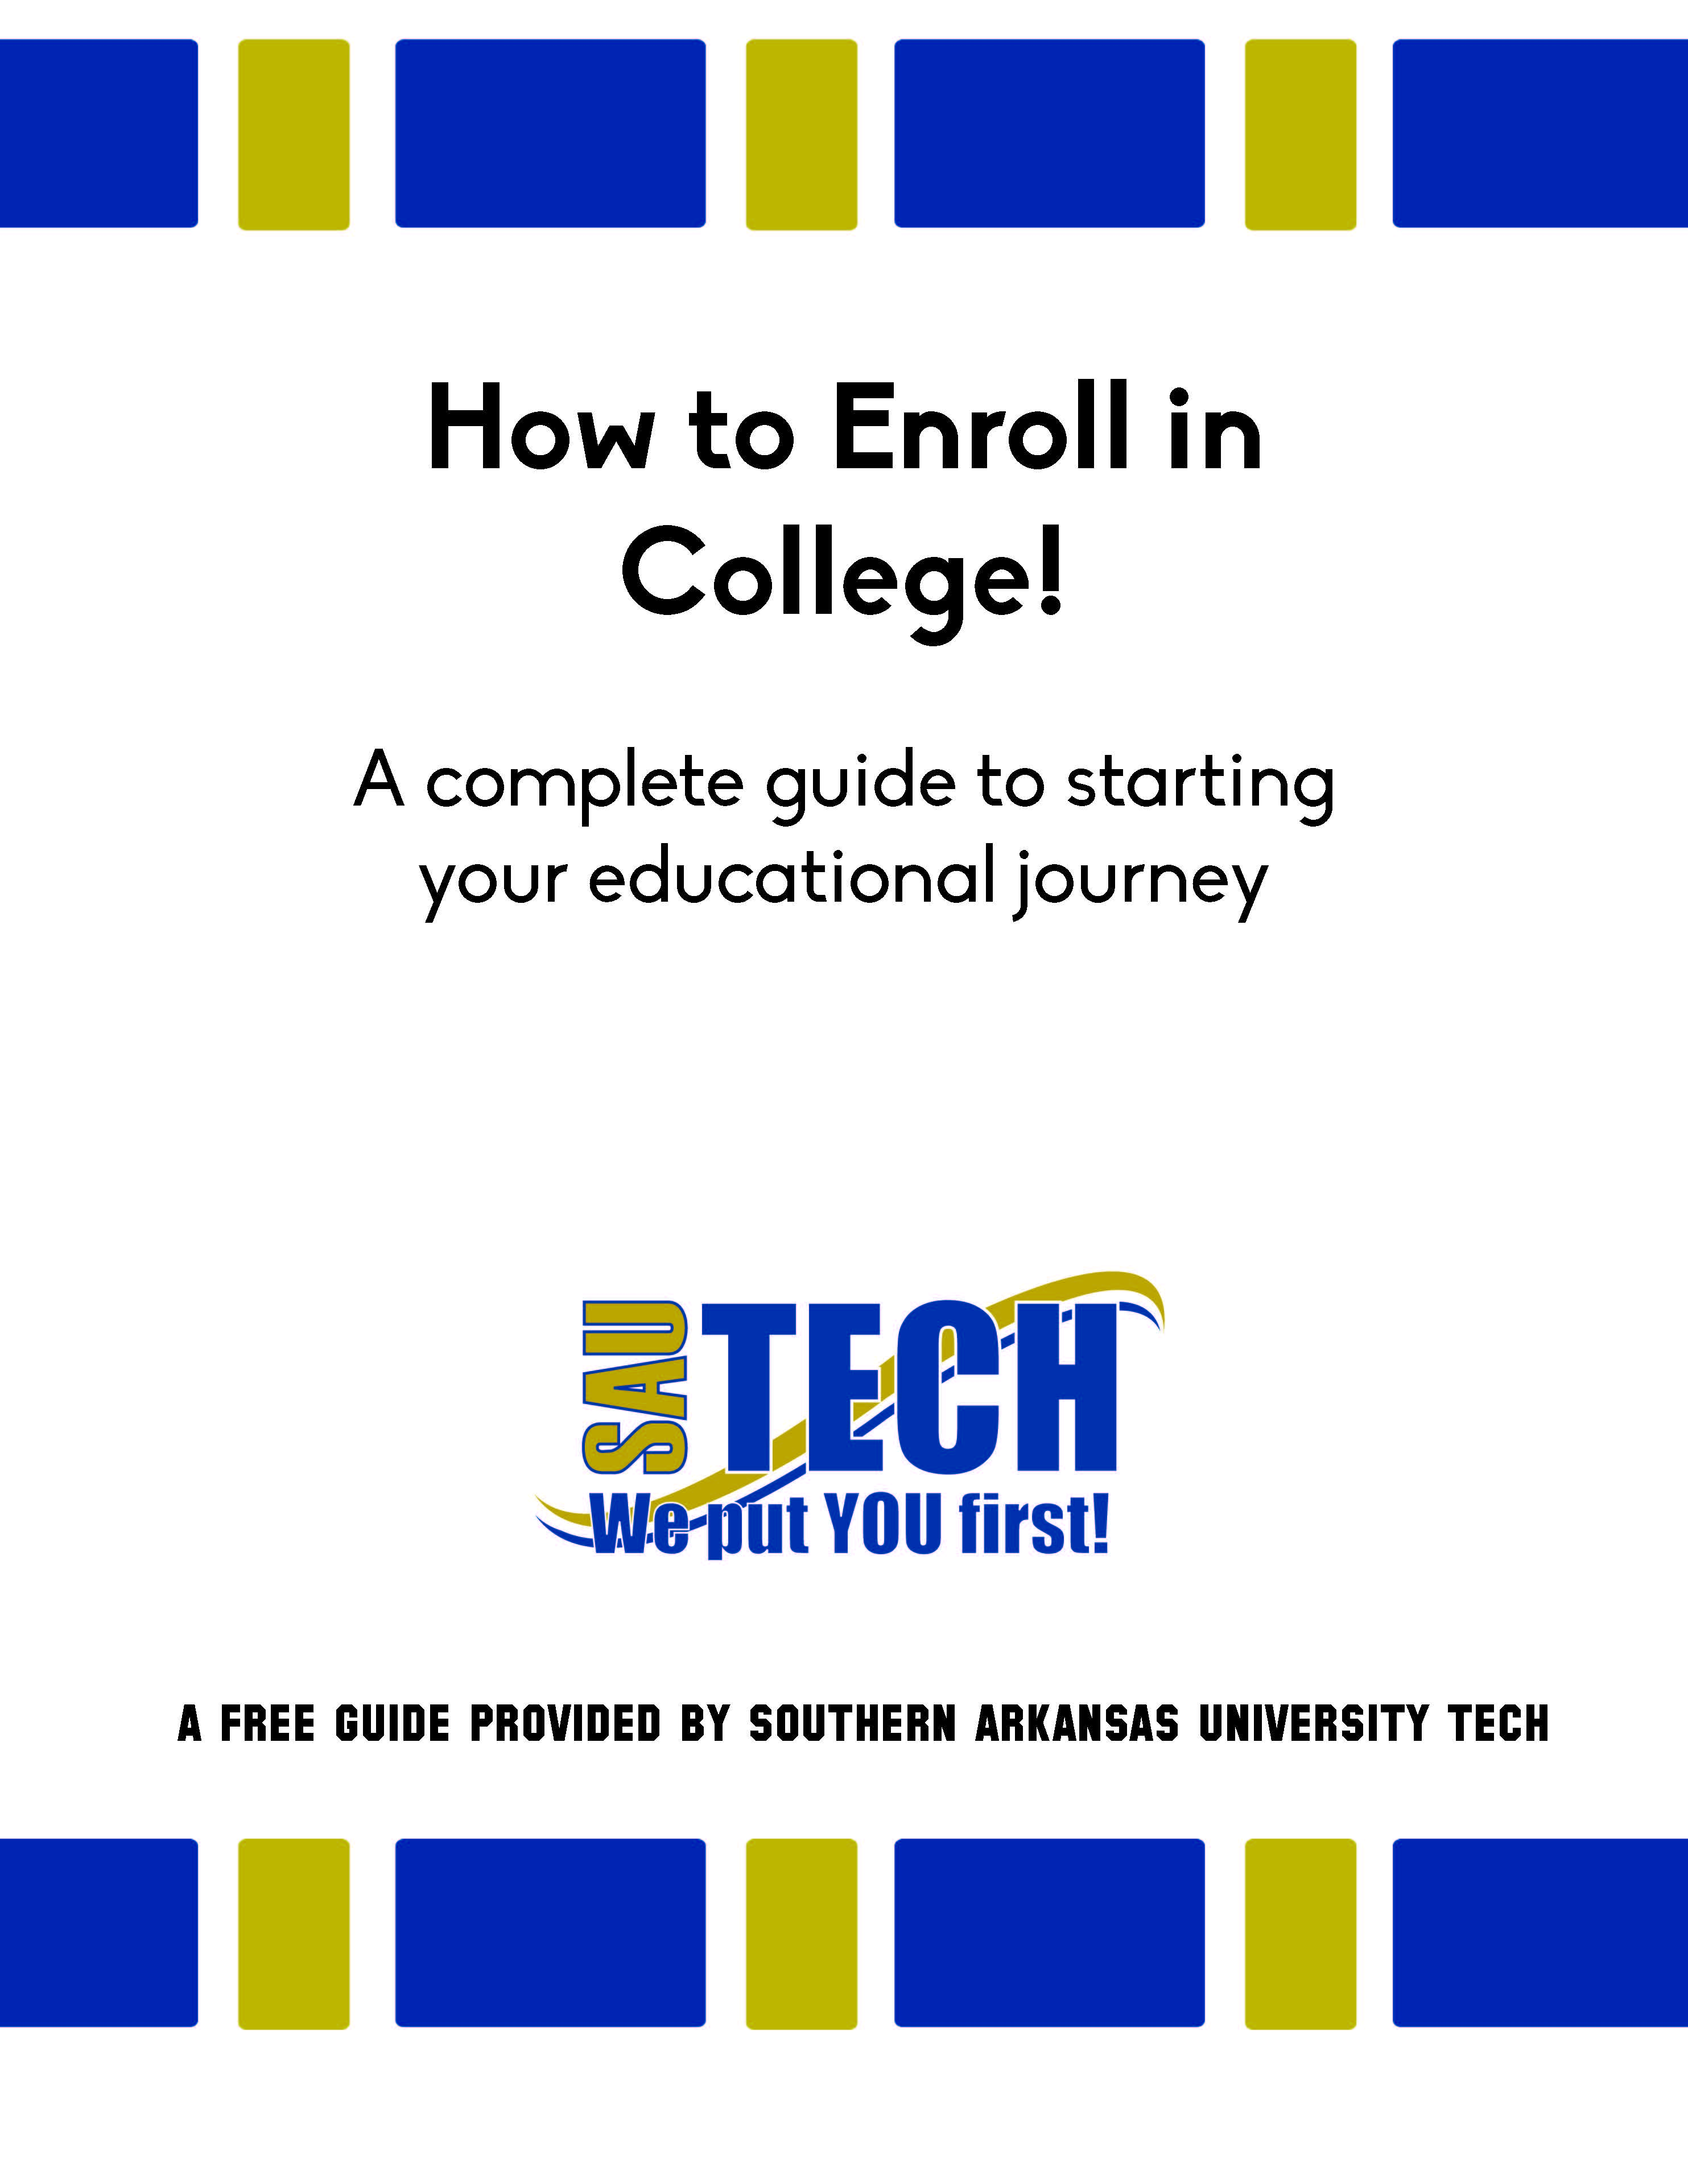 First page of Enrollment Guide